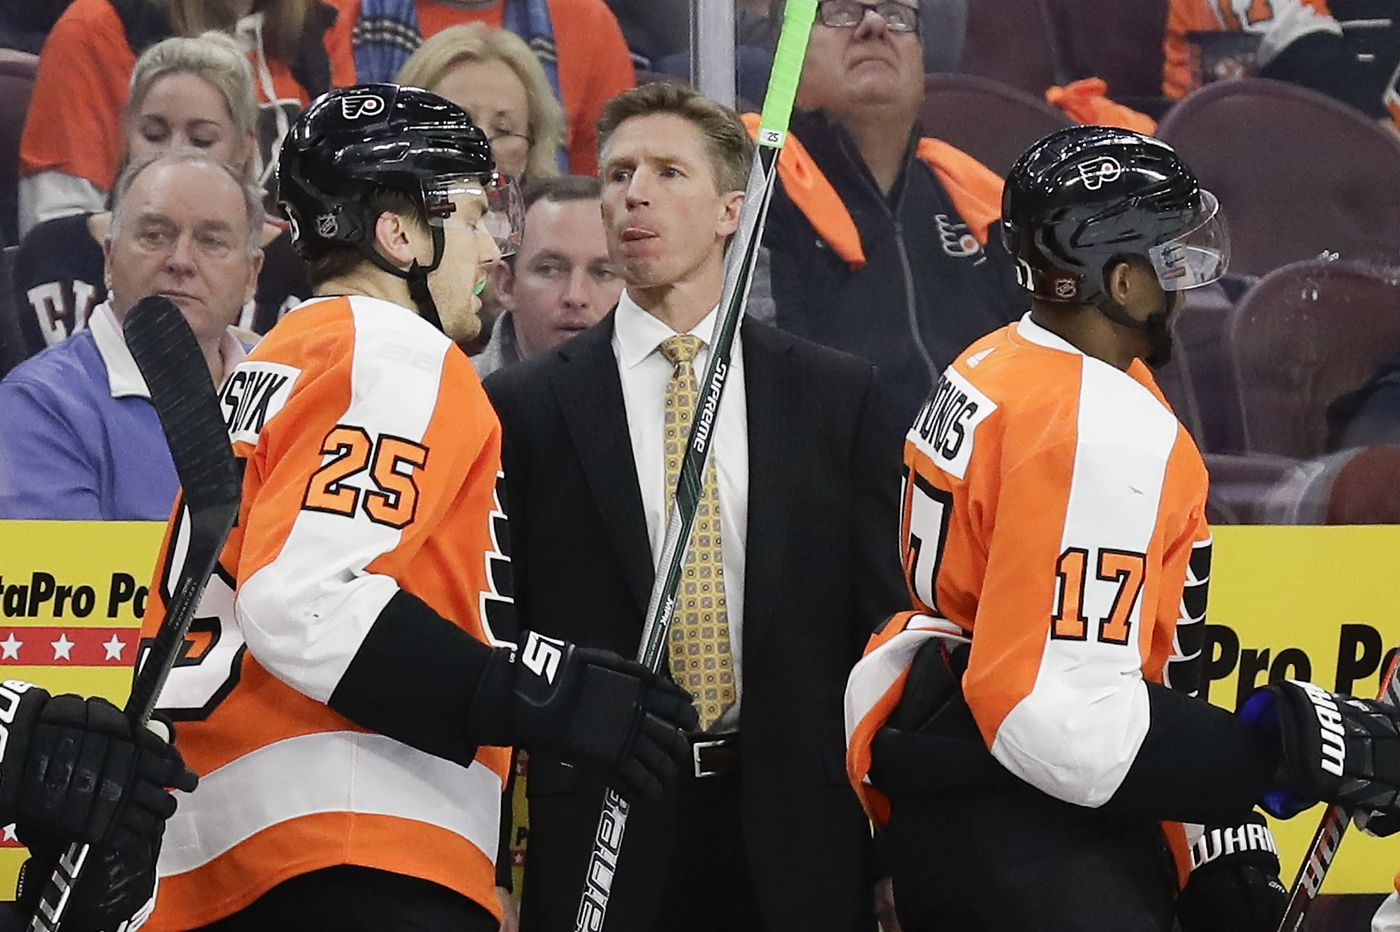 Flyers' penalty kill trends upward against Columbus, but power play continues to struggle